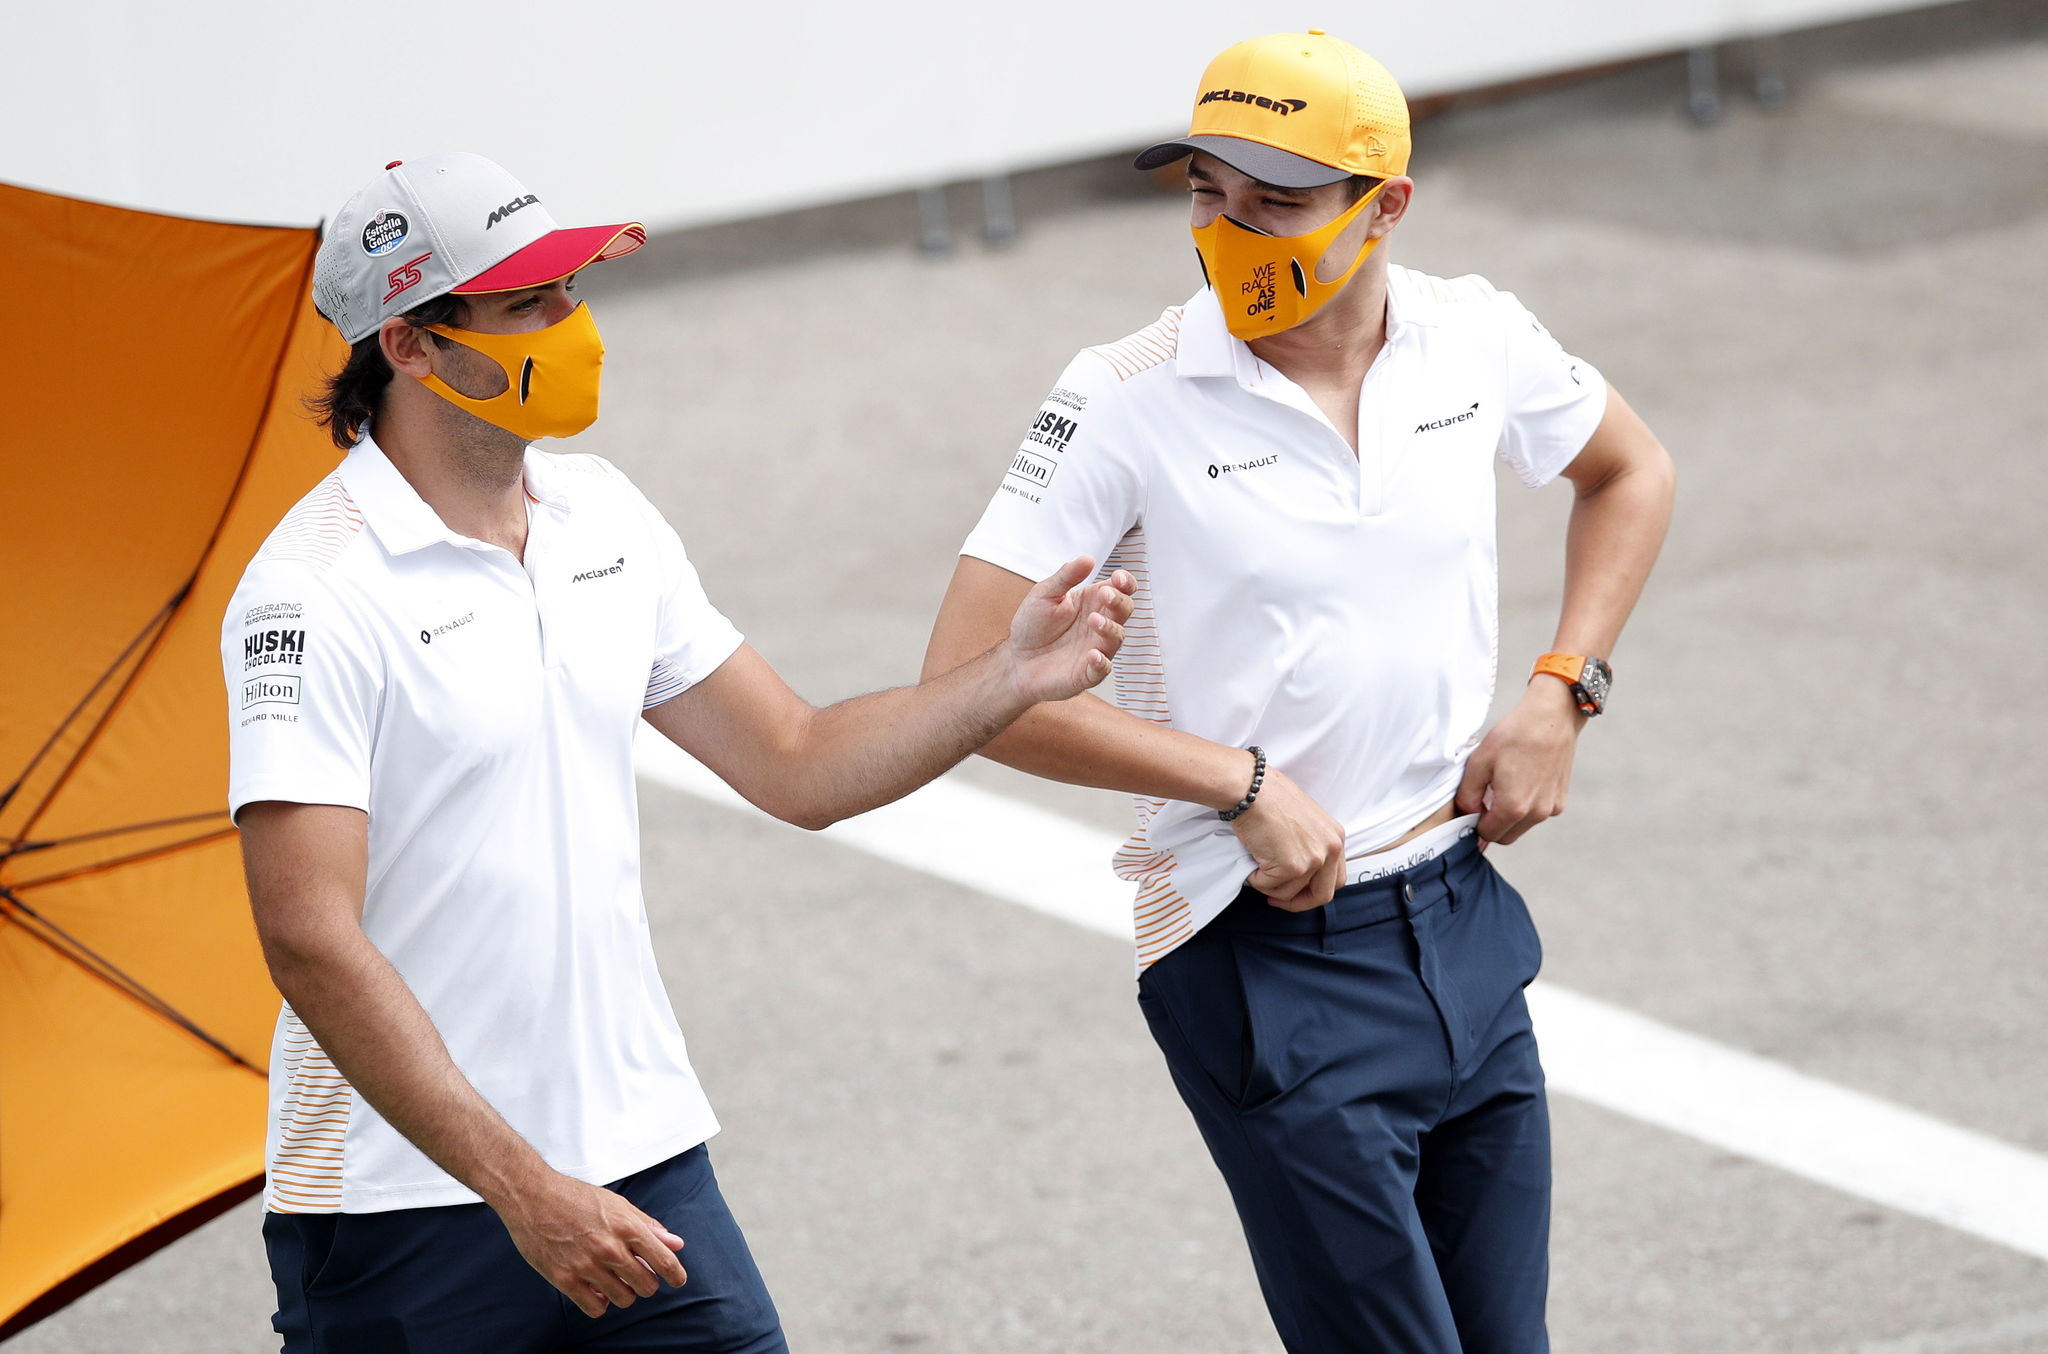 Montmelo (Spain), 13/08/2020.- Spanish driver lt;HIT gt;Carlos lt;/HIT gt; lt;HIT gt;Sainz lt;/HIT gt; Jr. (L) of McLaren and his British teammate Lando Norris at the Circuit de Barcelona-Catalunya in Montmelo, Spain, 13 August 2020. The Formula One Grand Prix of Spain takes place on 16 August 2020. (Fórmula Uno, España) EFE/EPA/ALEJANDRO GARCIA